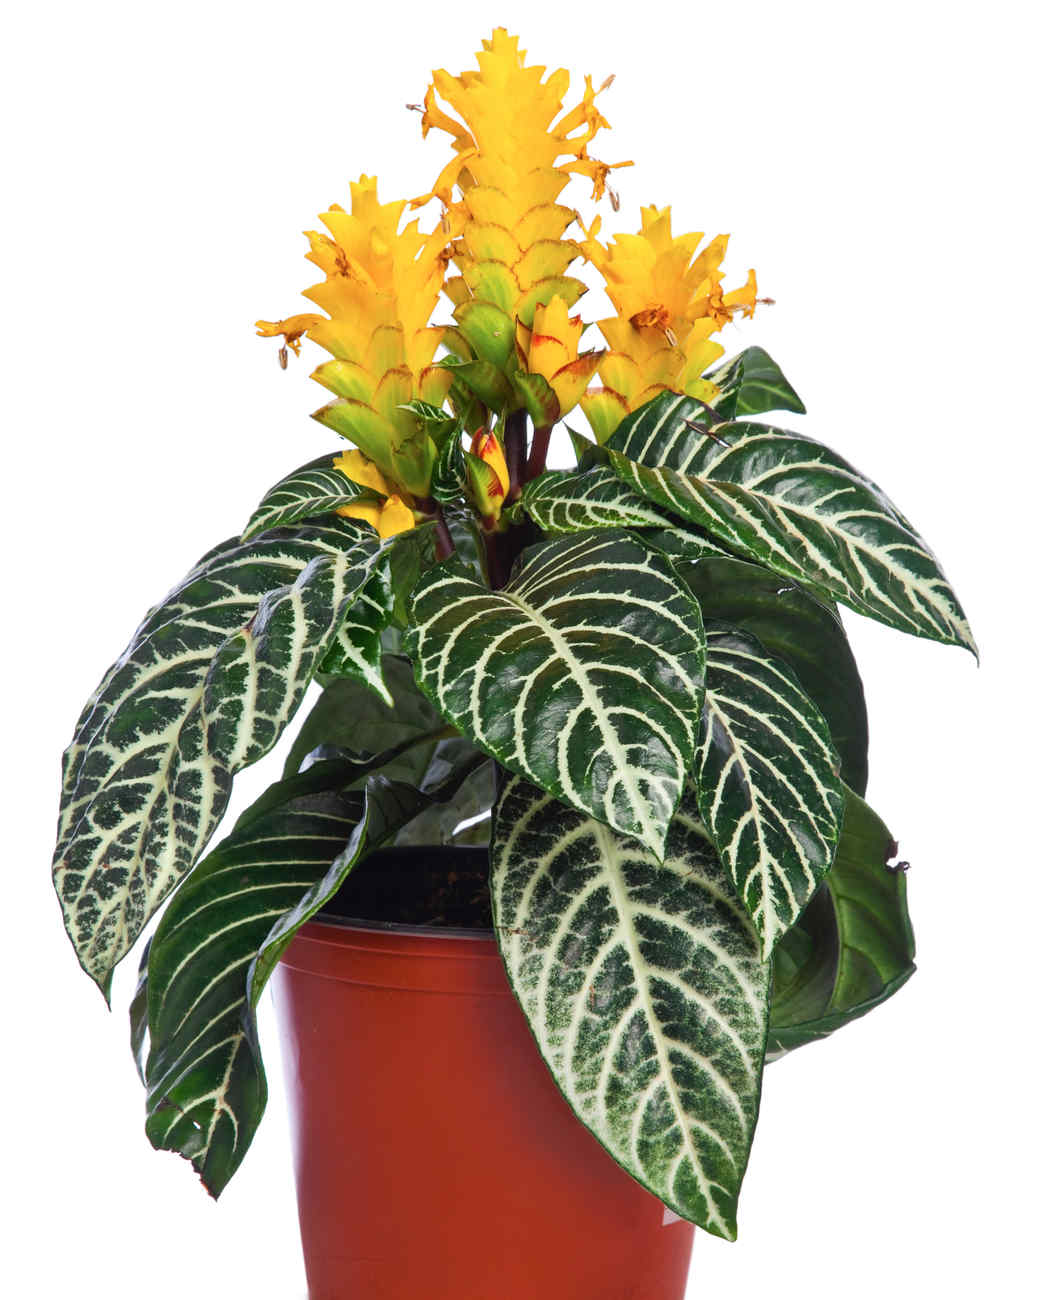 zebra succulent plant with yellow flower